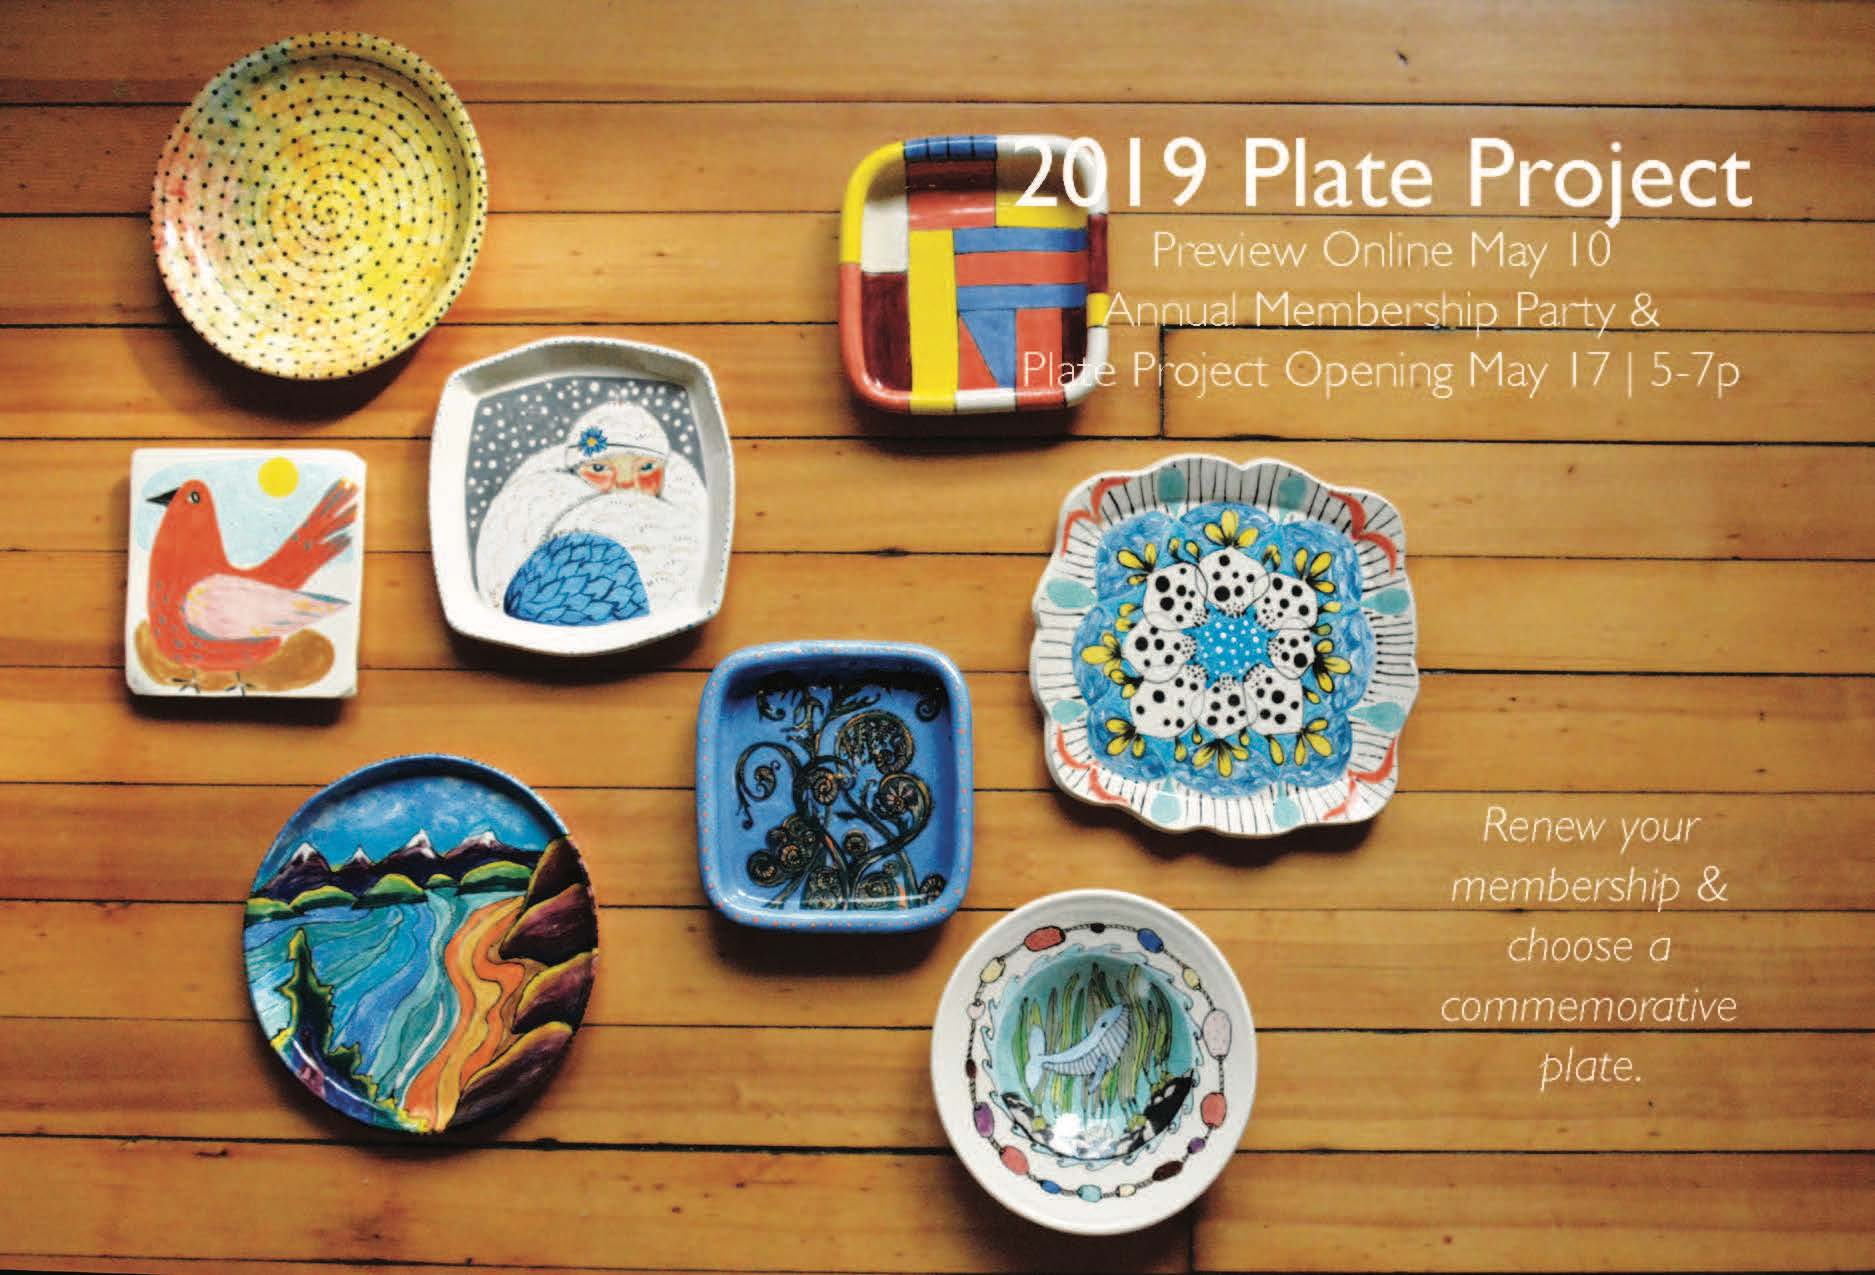 2019 Plate Project Gallery